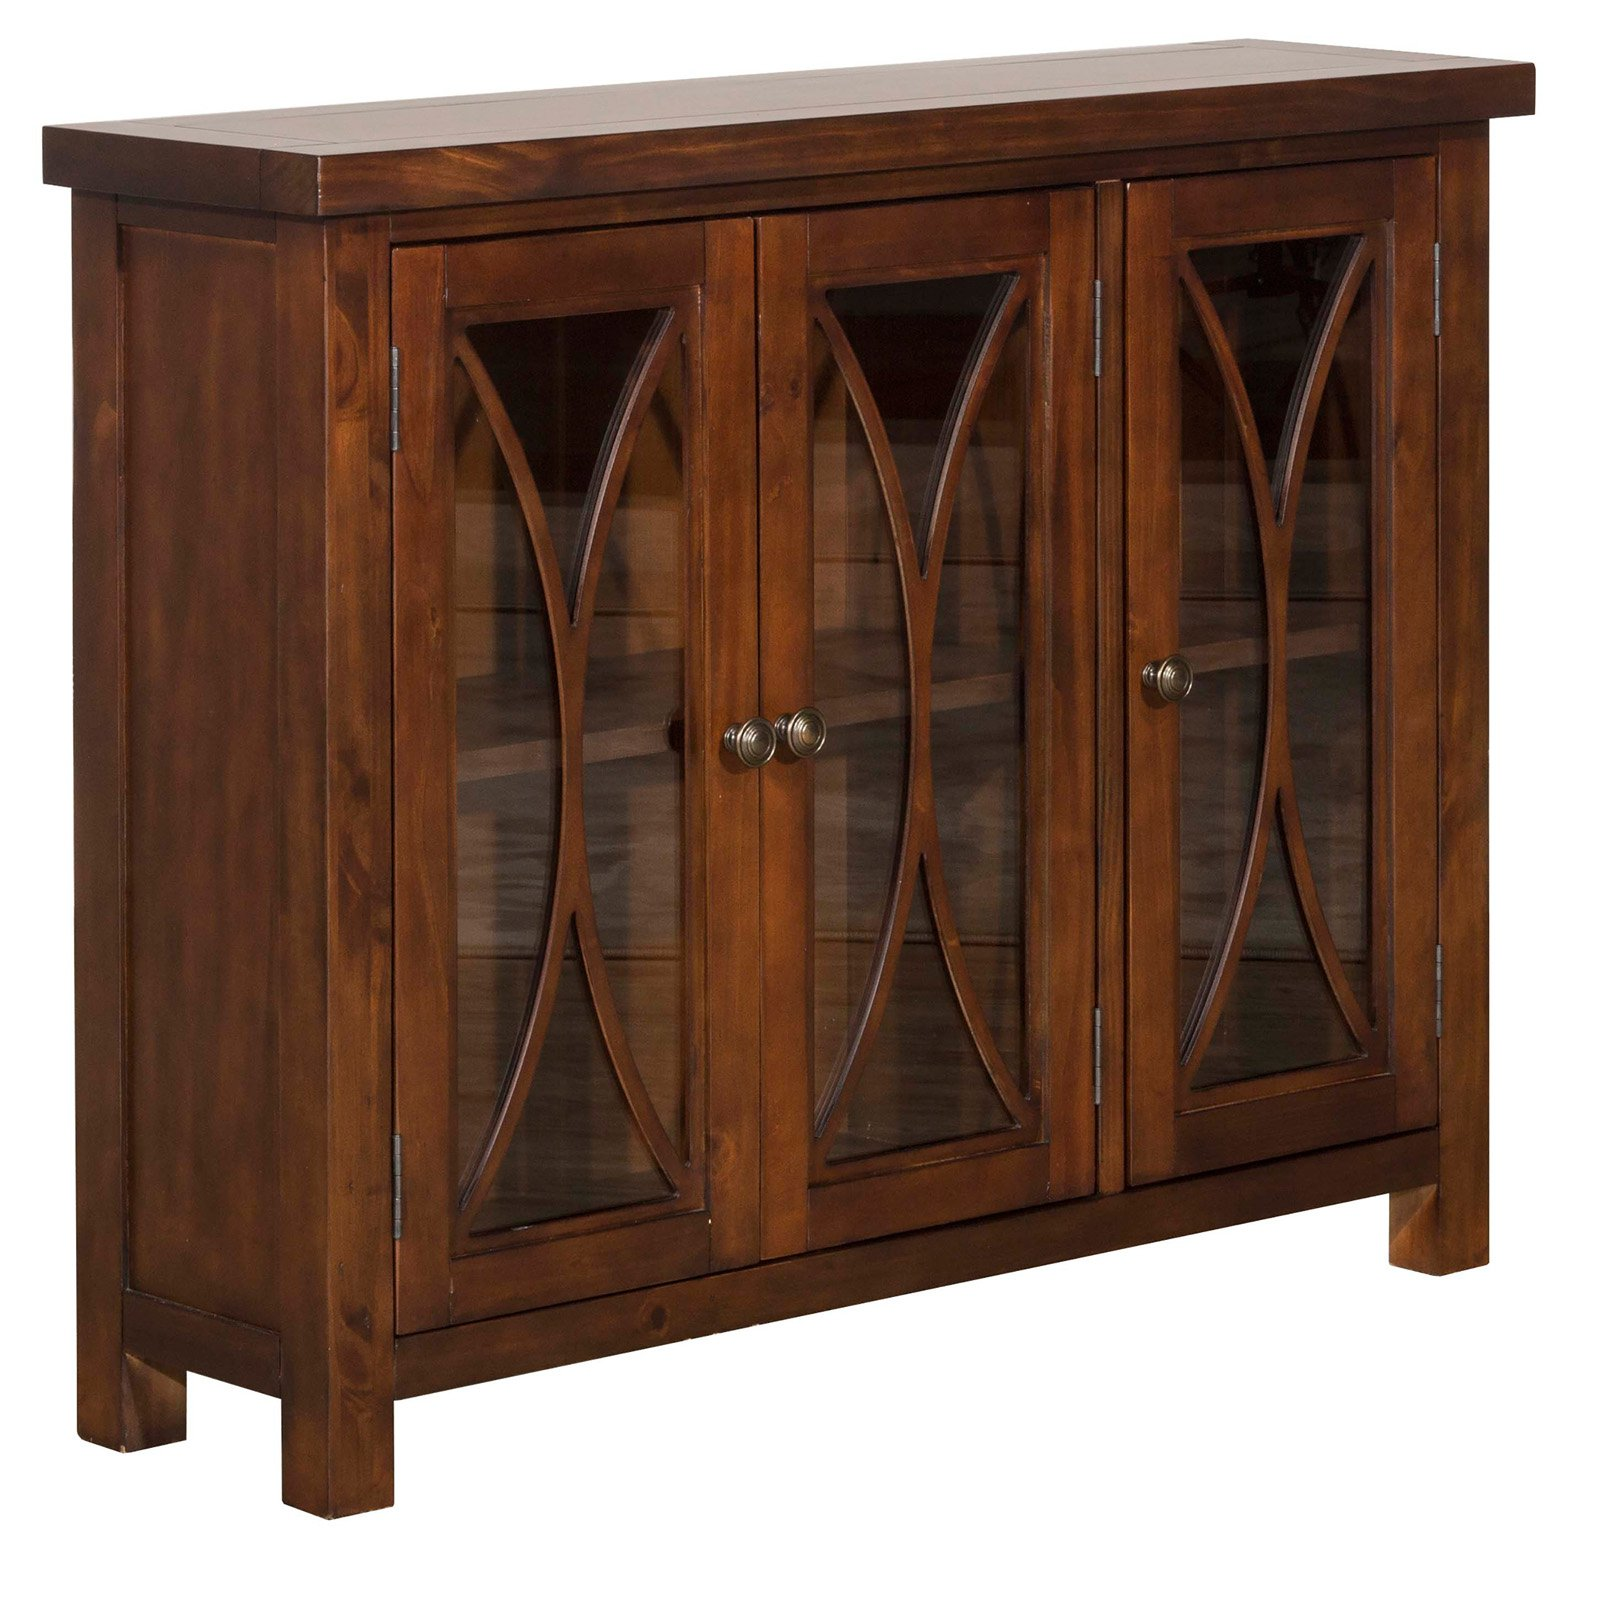 Hillsdale Furniture Bayside Three (3) Door Cabinet, Multiple Finishes by Hillsdale Furniture